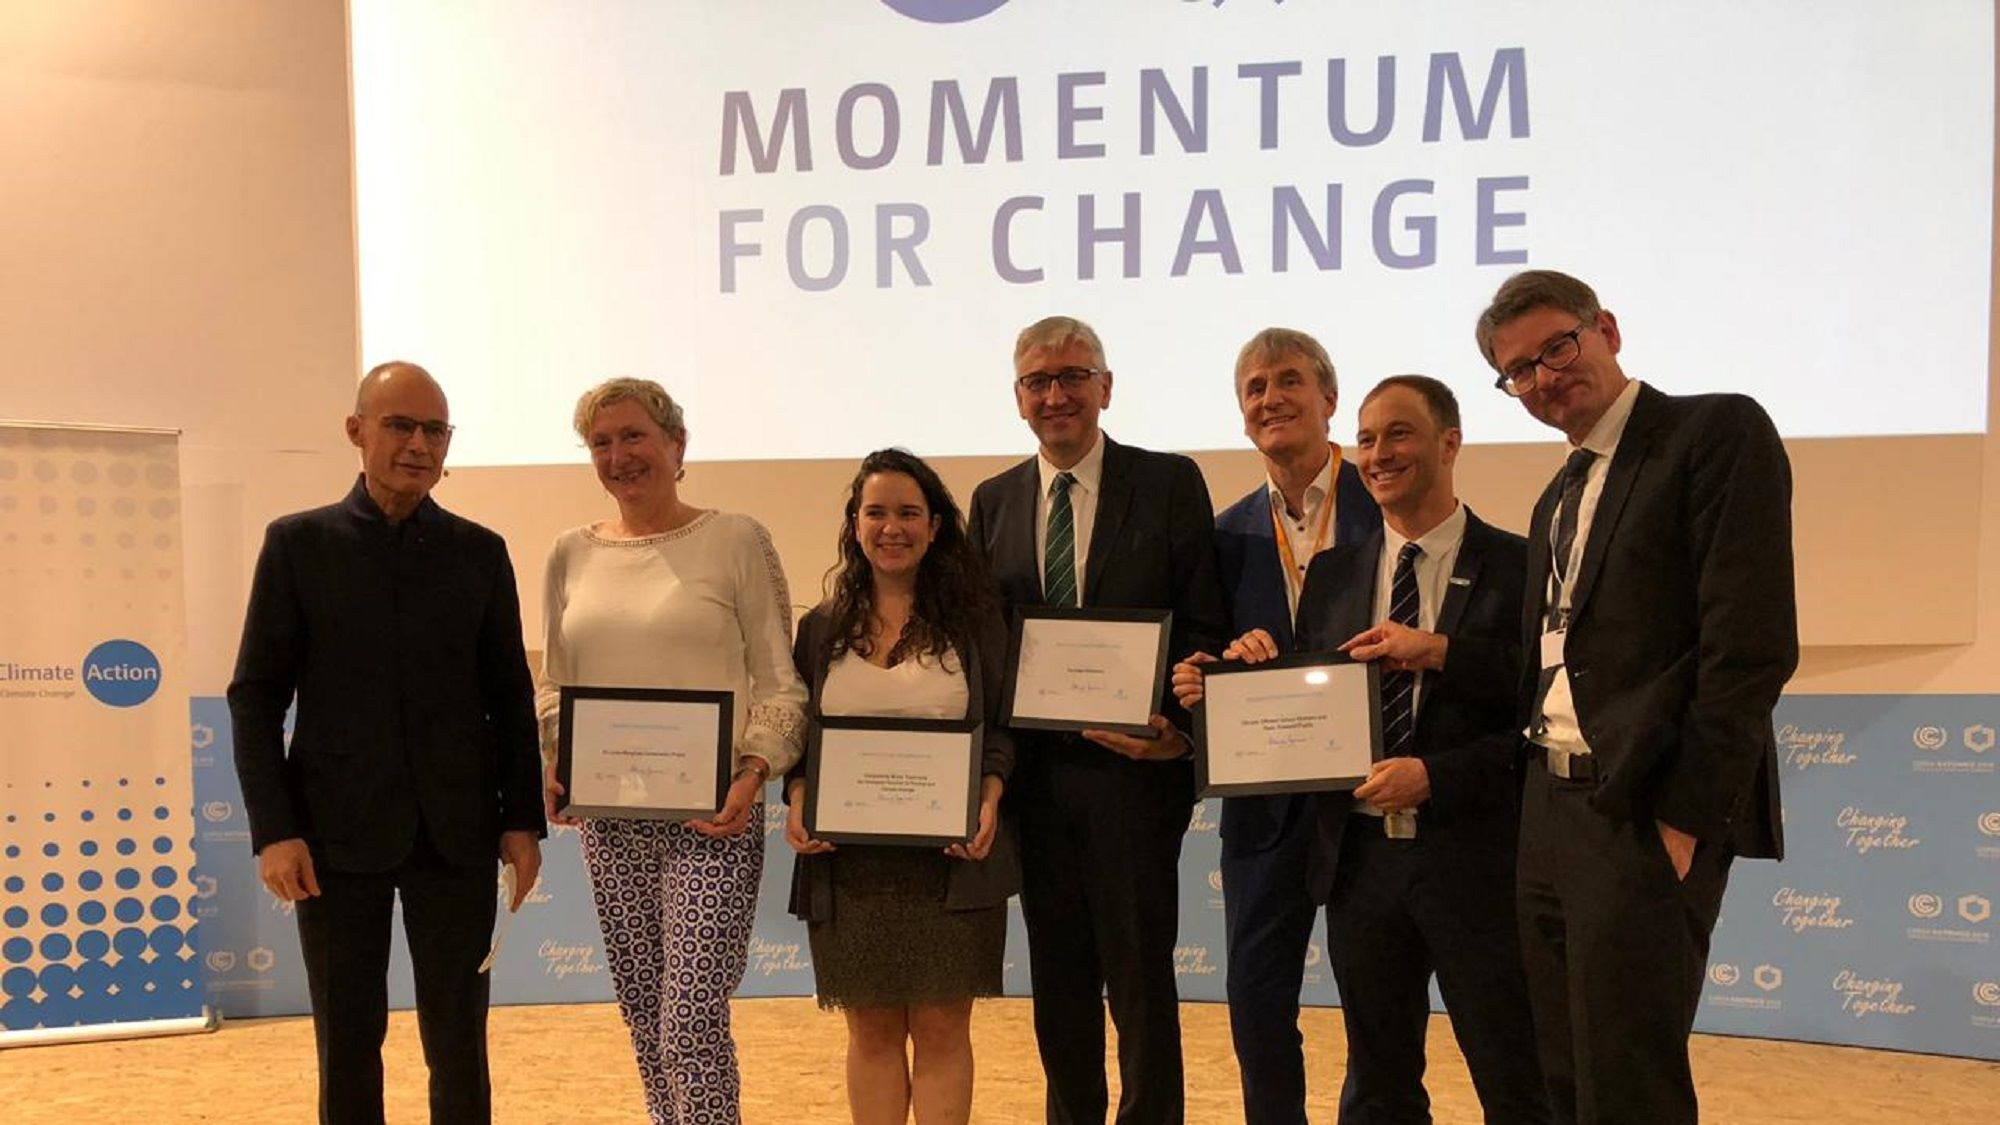 SUEZ Noticia COP24 Momentum for Change premio Naciones unidas header